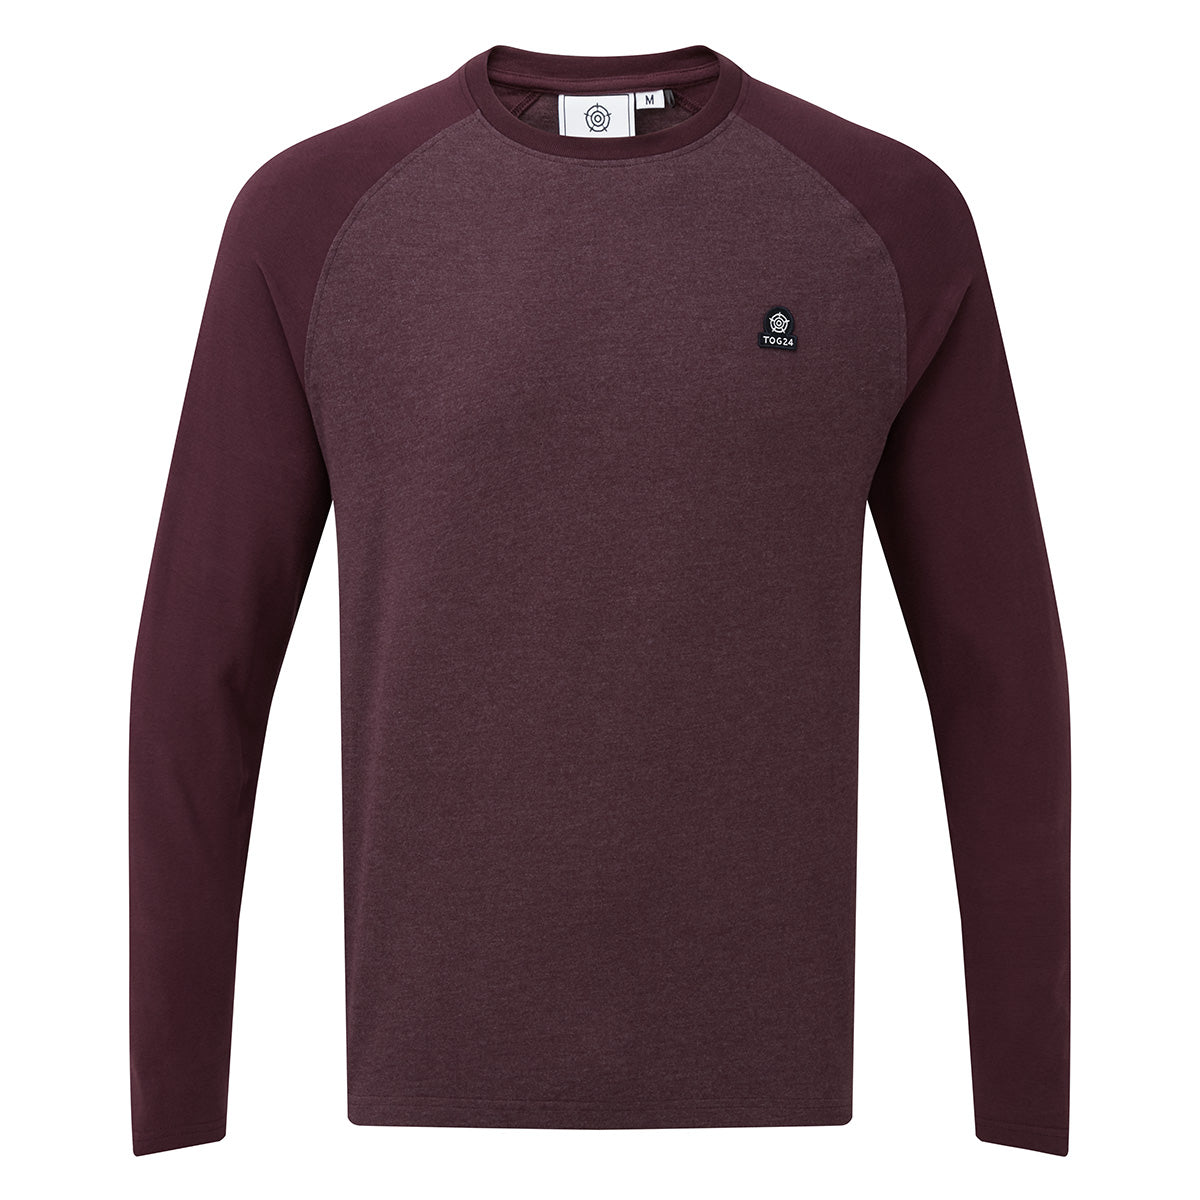 Haxby Mens Long Sleeve Raglan T-Shirt - Deep Port/Deep Port Marl image 4